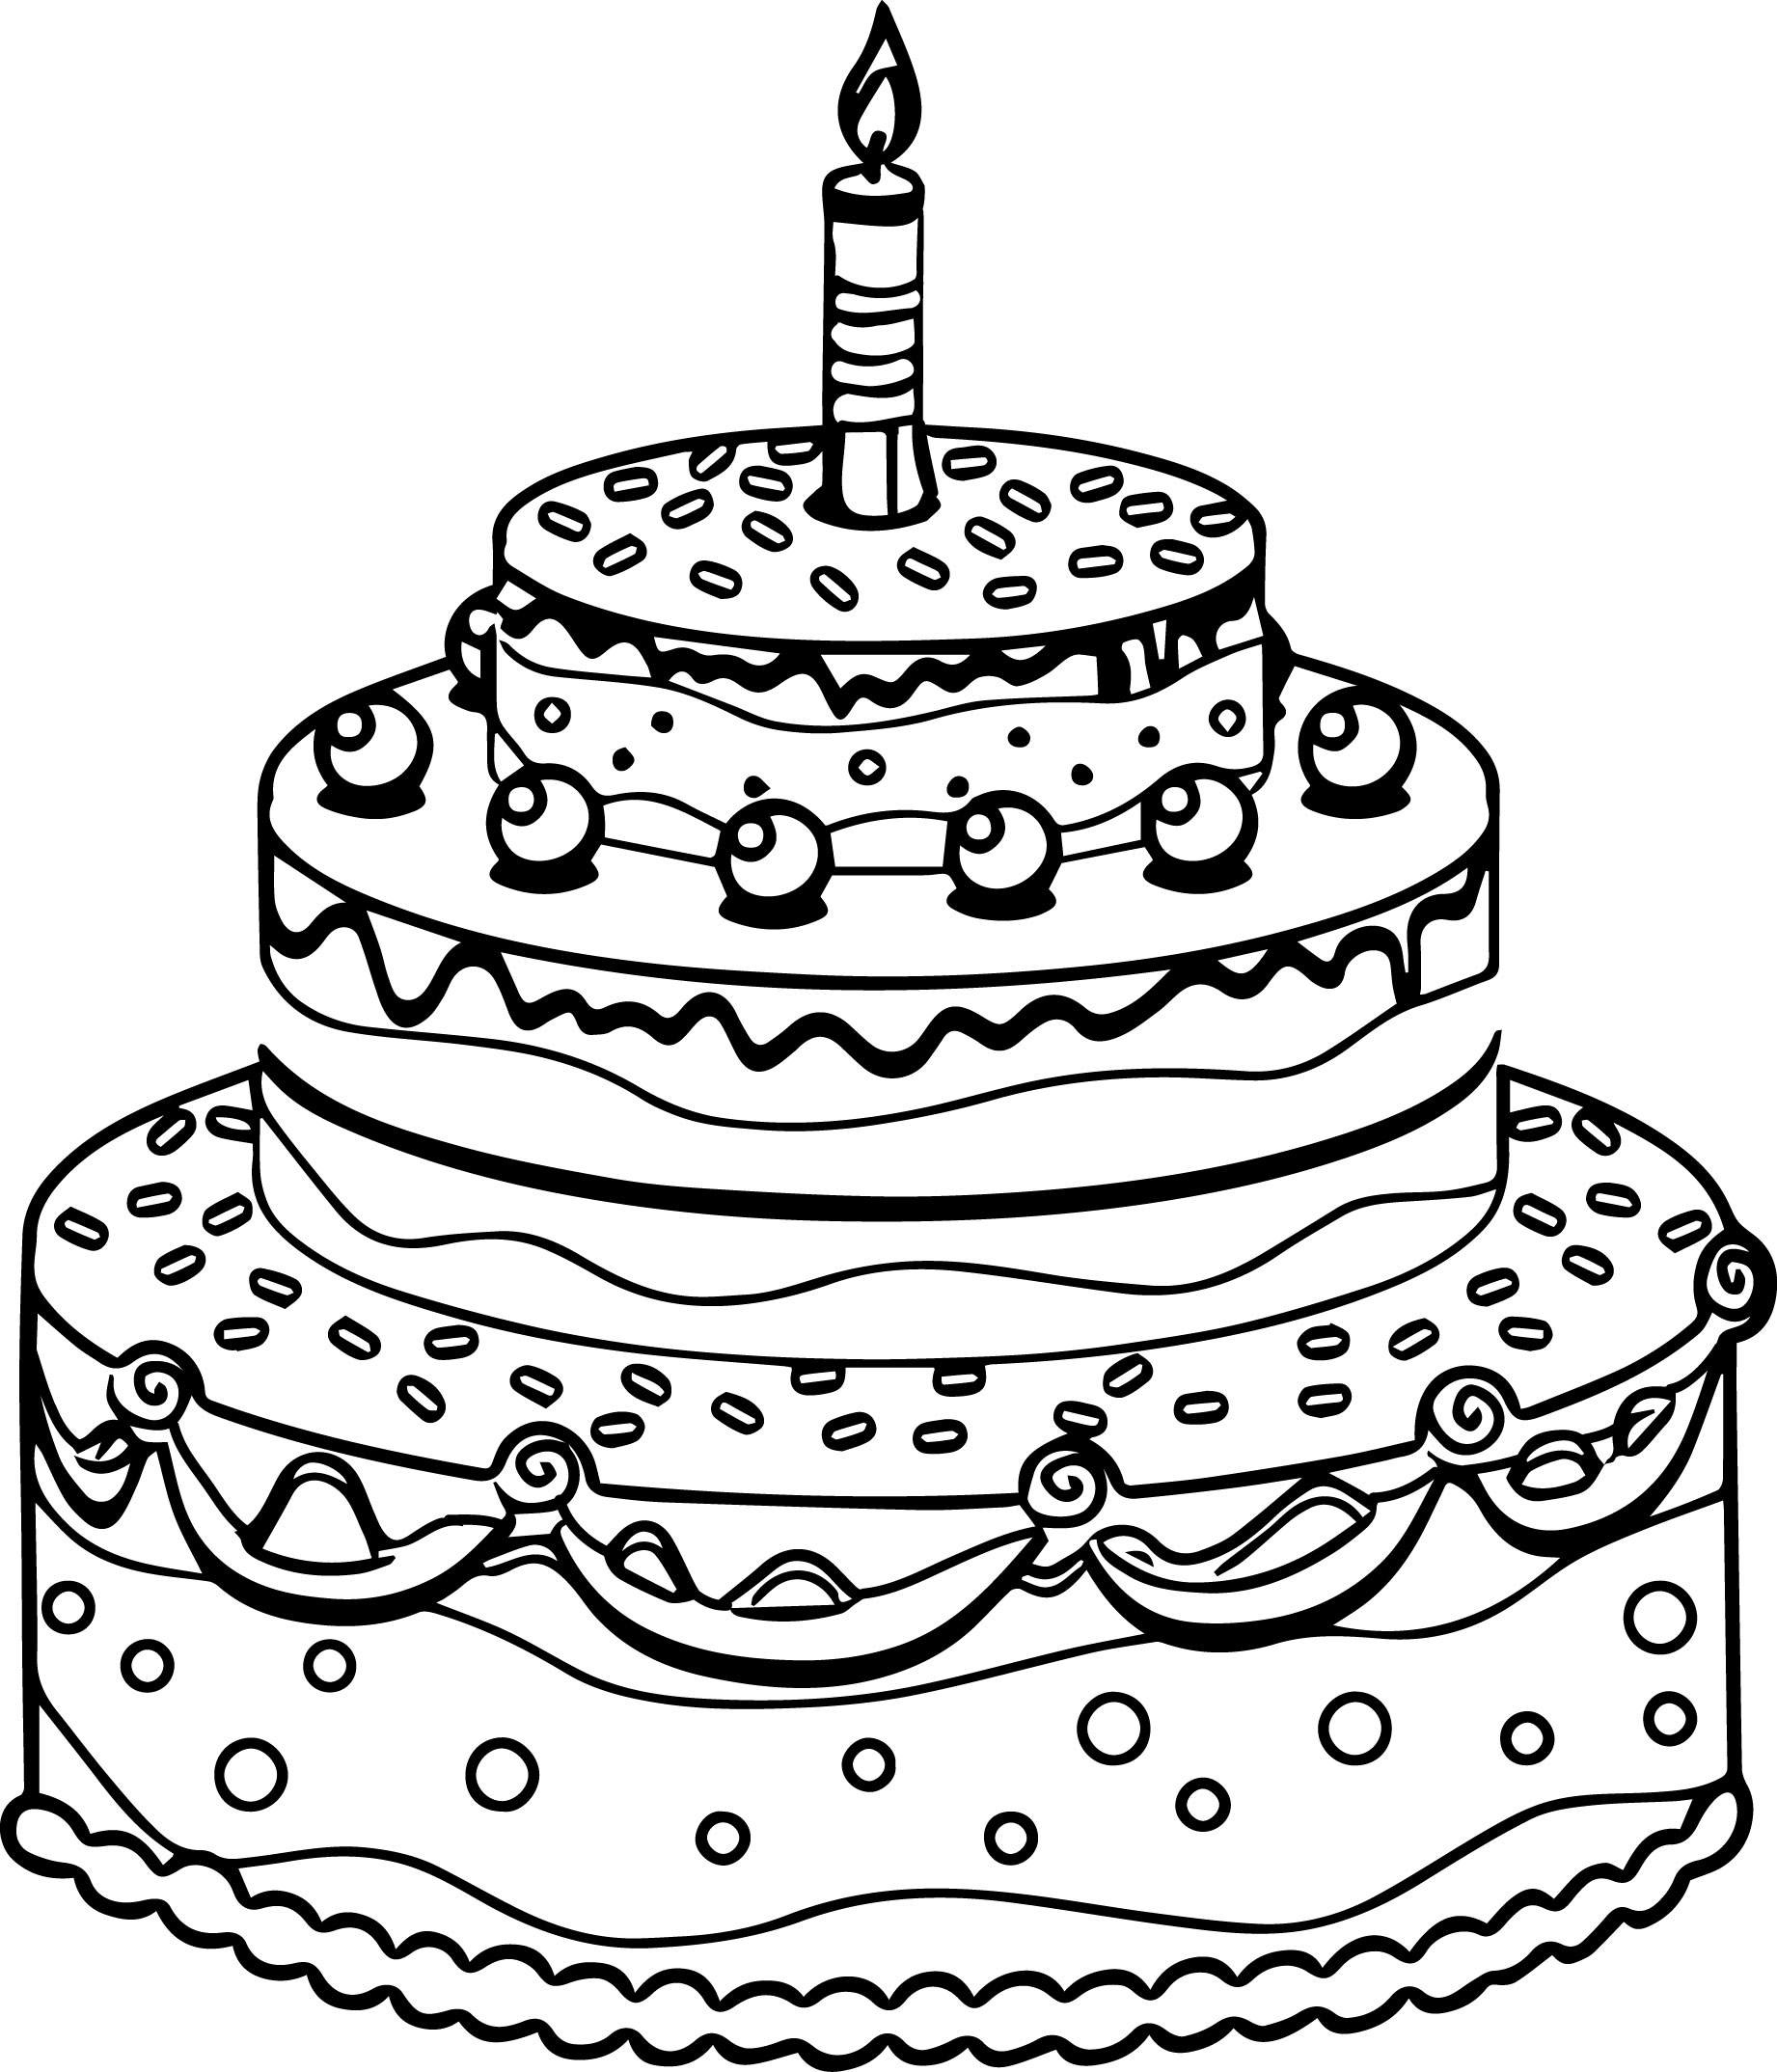 birthday cake coloring ; birthday-cake-coloring-page-birthday-cake-coloring-page-05-and-is-an-important-part-of-the-reception-decor-preferably-eksotic